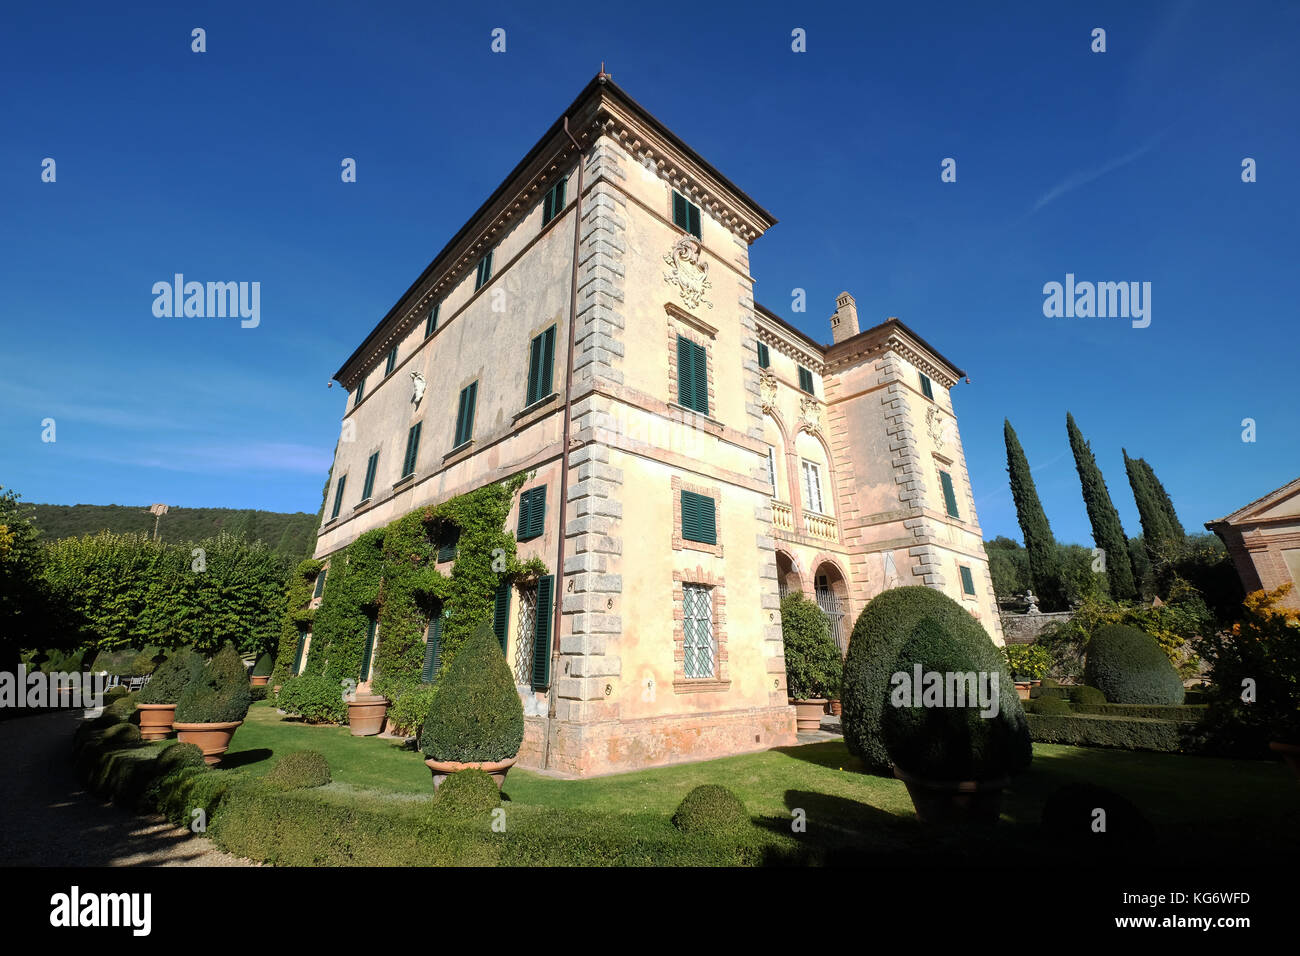 Villas Near Siena Italy contemporary images of villa cetinale,siena italy stock